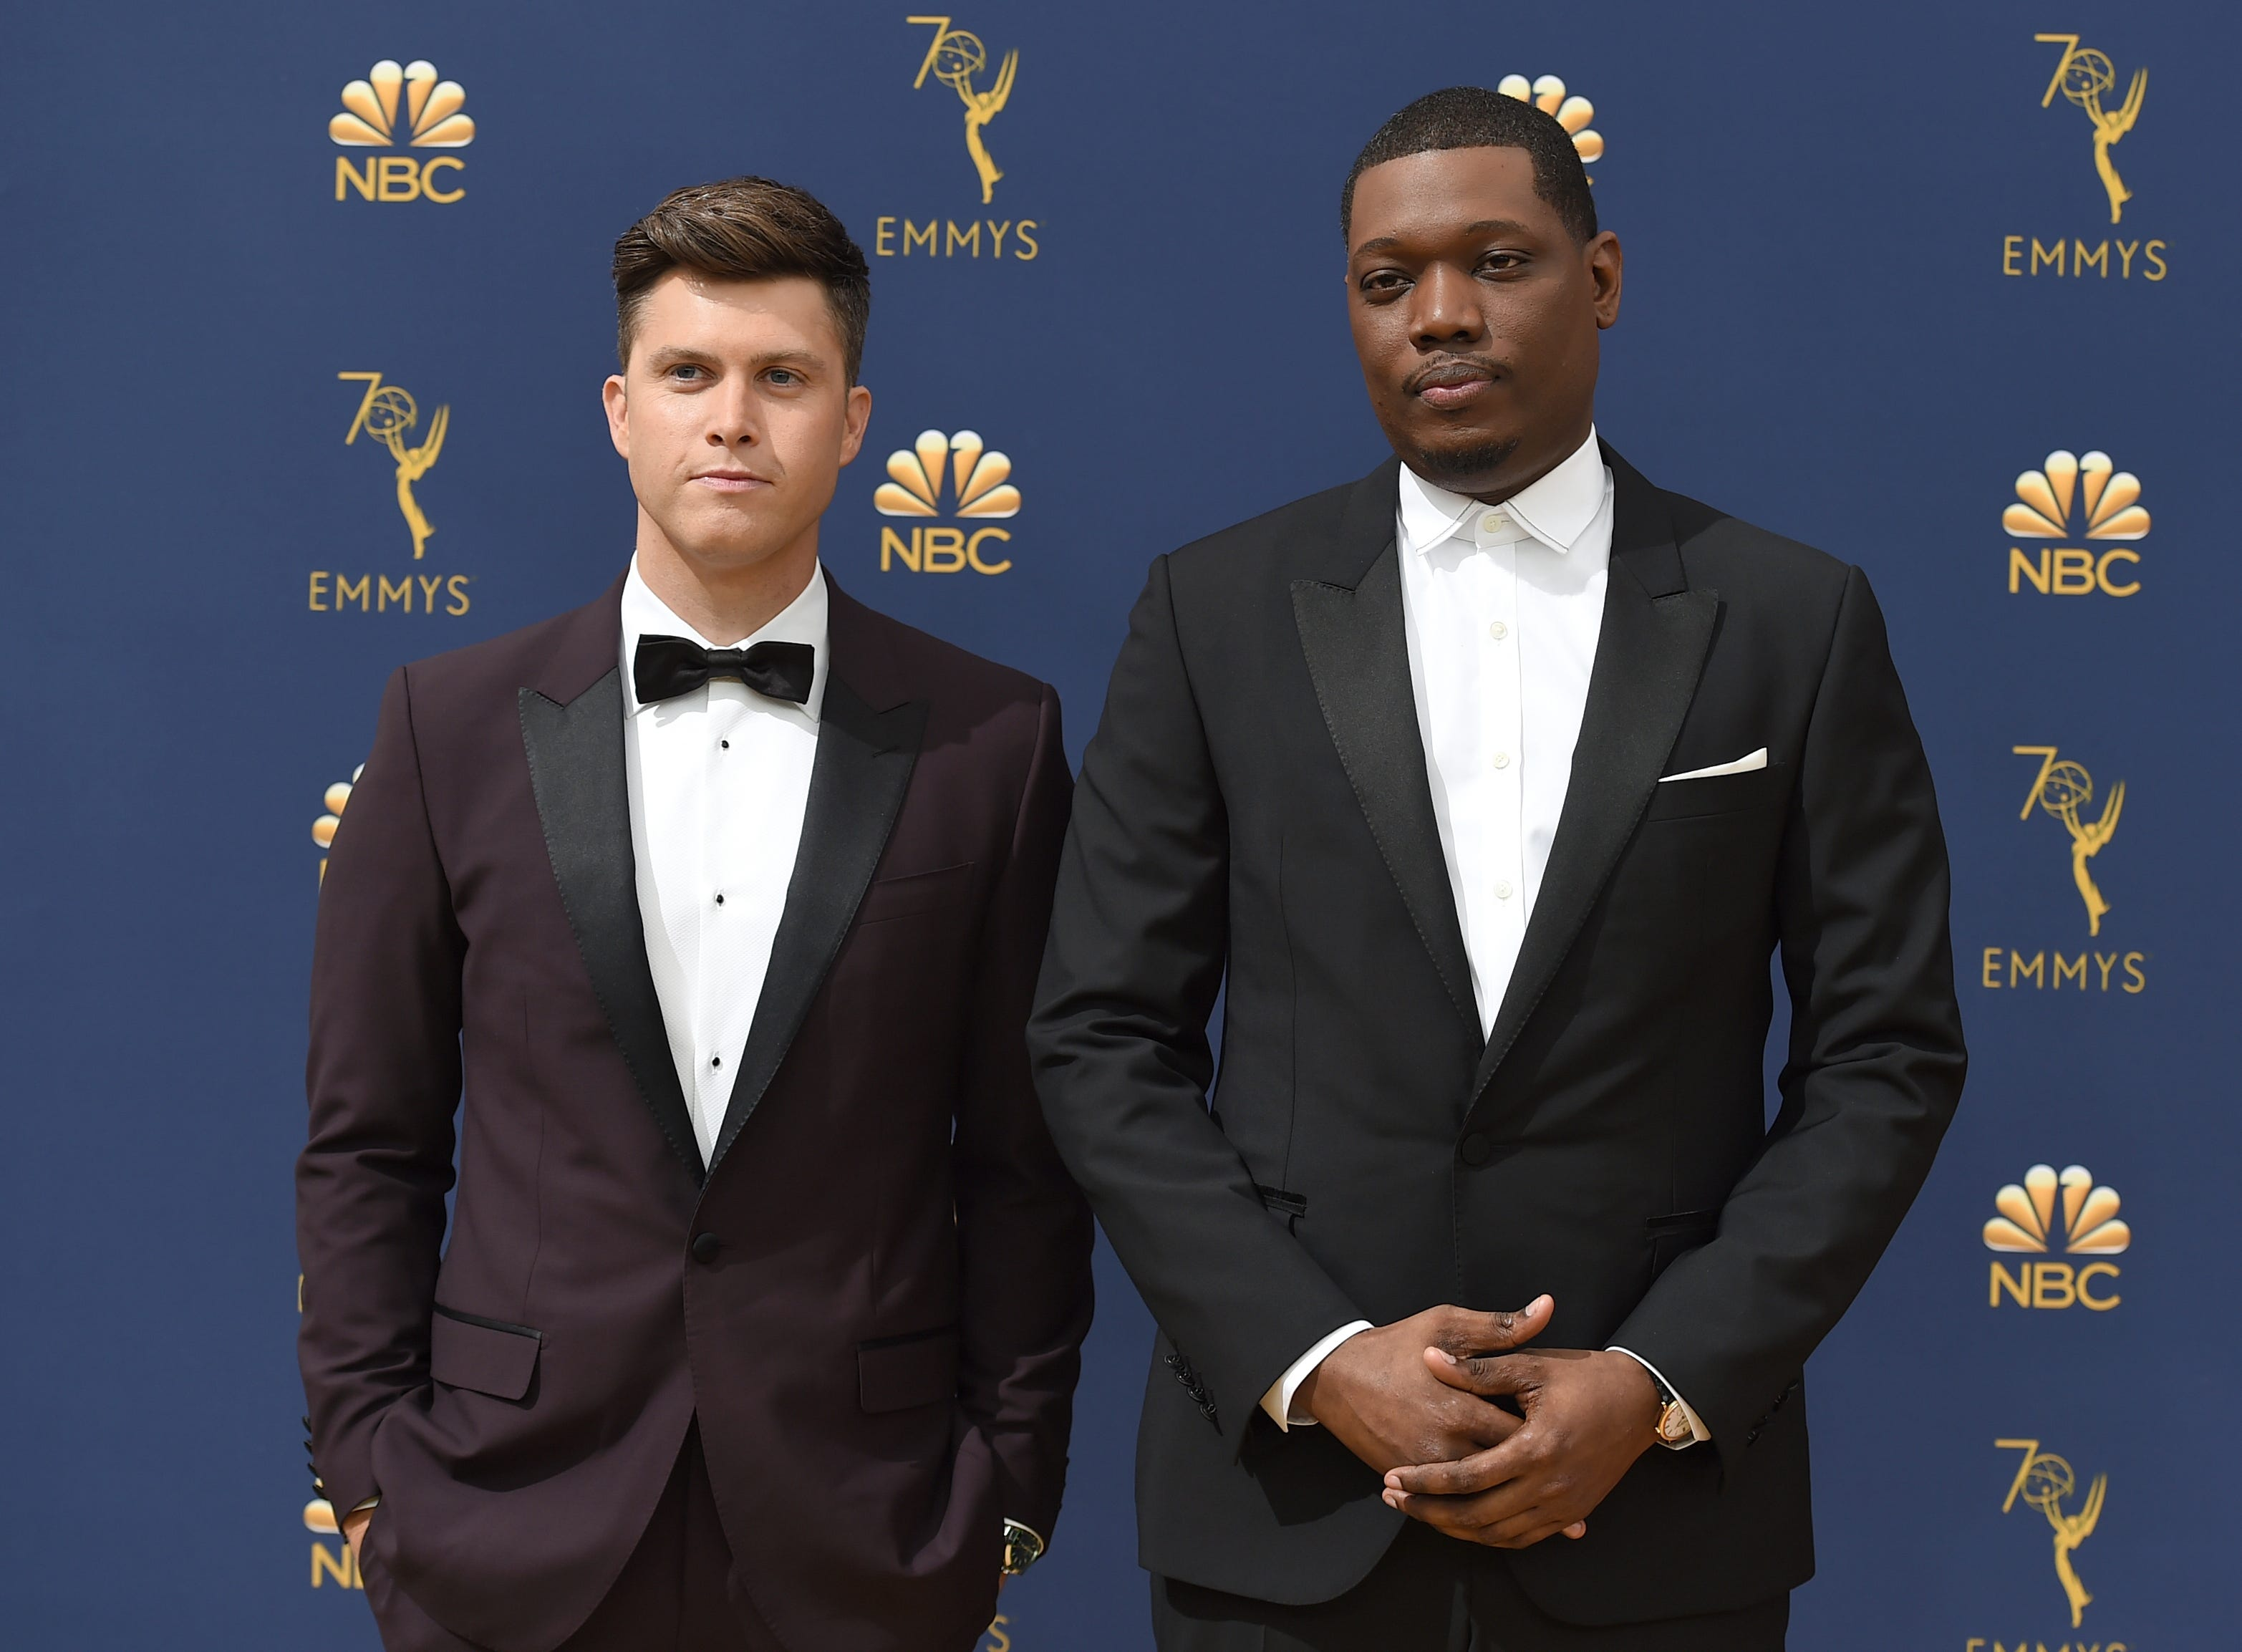 Colin Jost, left, and Michael Che arrive at the 70th Primetime Emmy Awards on Monday, Sept. 17, 2018, at the Microsoft Theater in Los Angeles. (Photo by Jordan Strauss/Invision/AP)